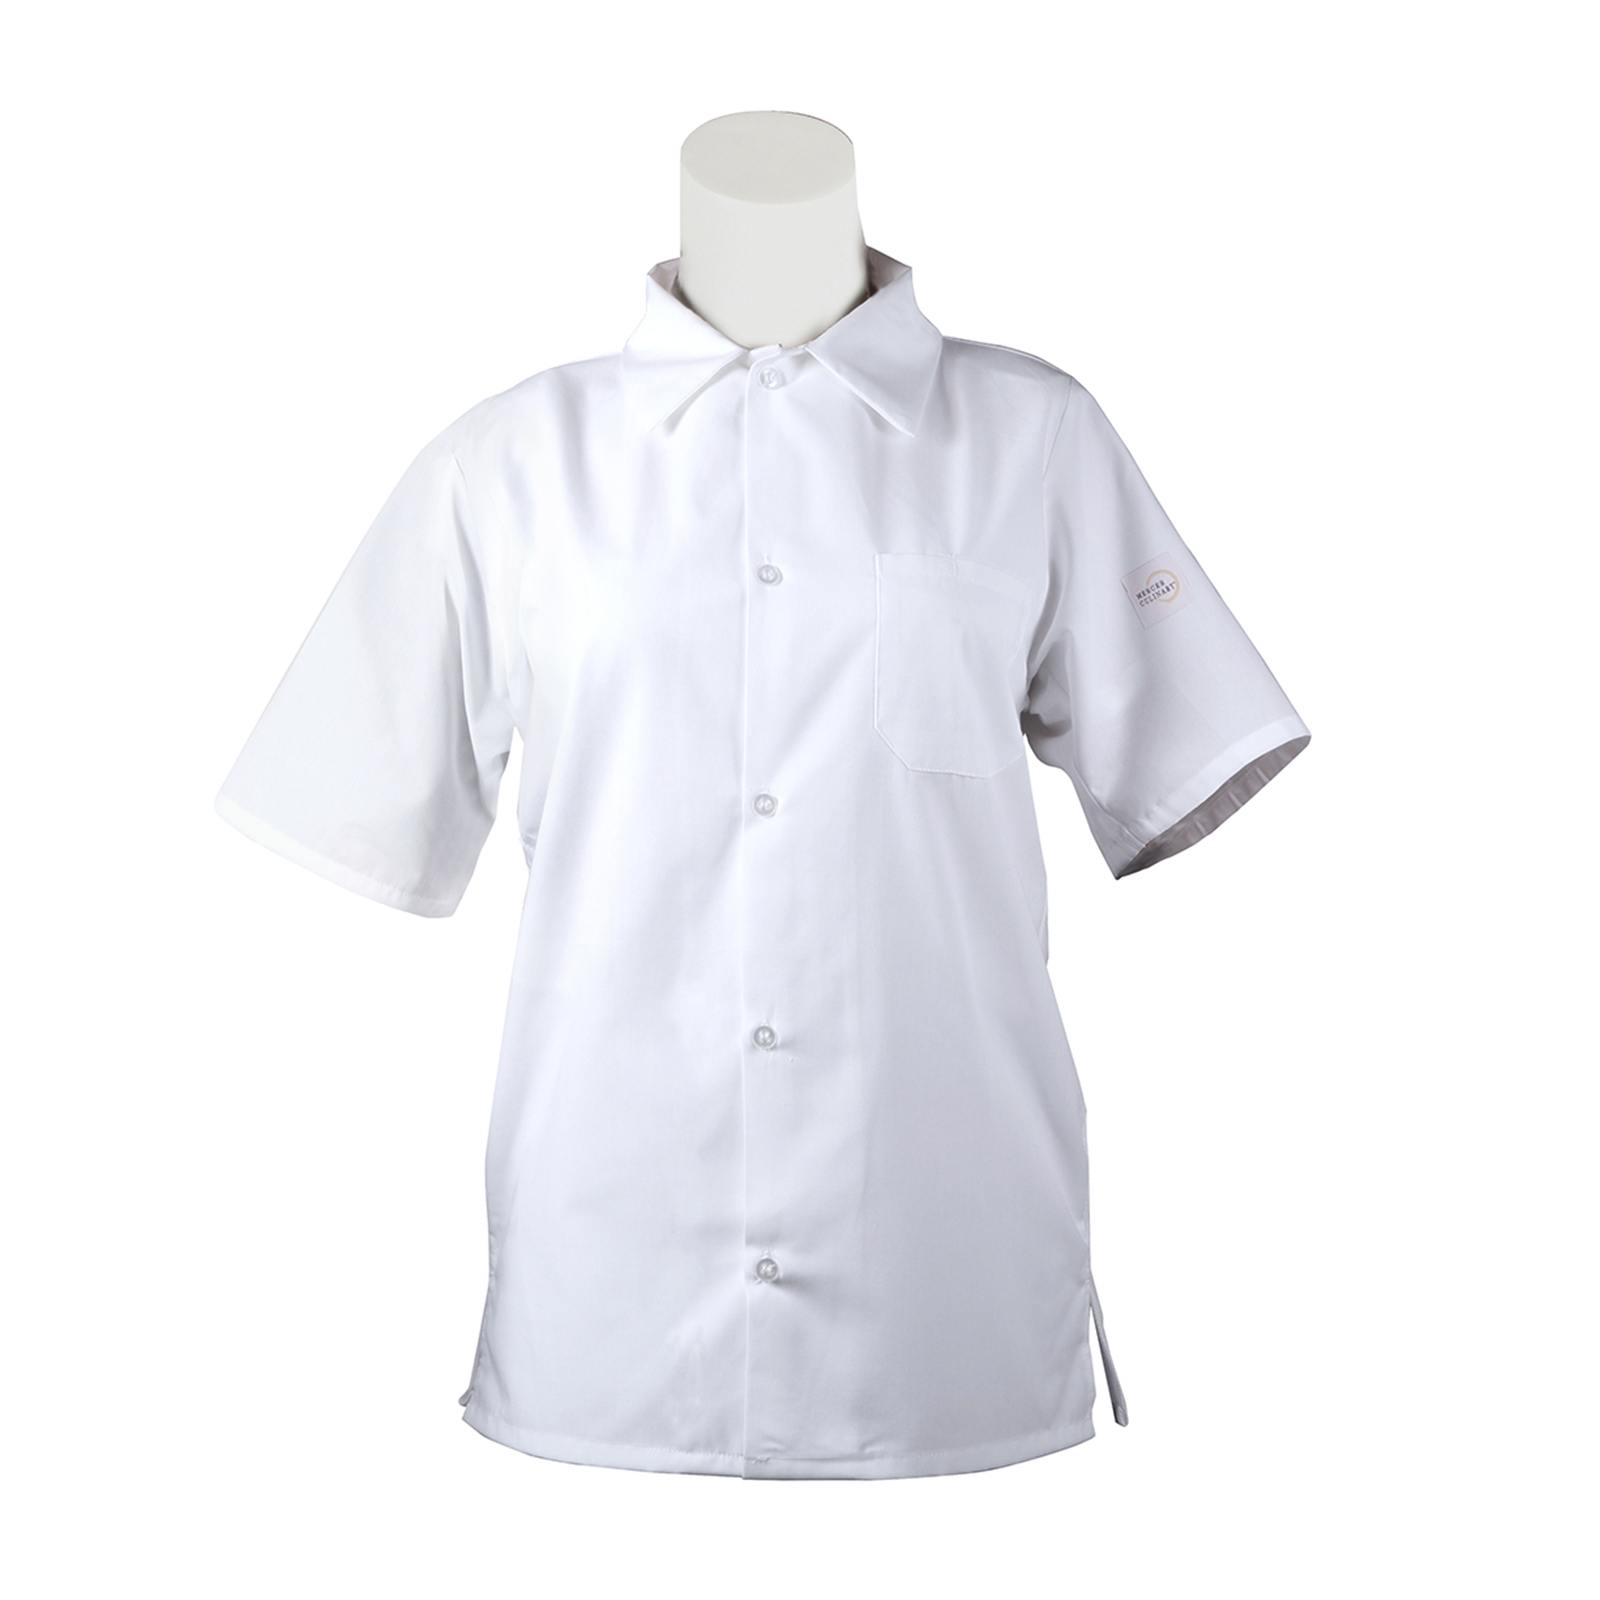 Mercer Culinary M60200WH2X cook's shirt